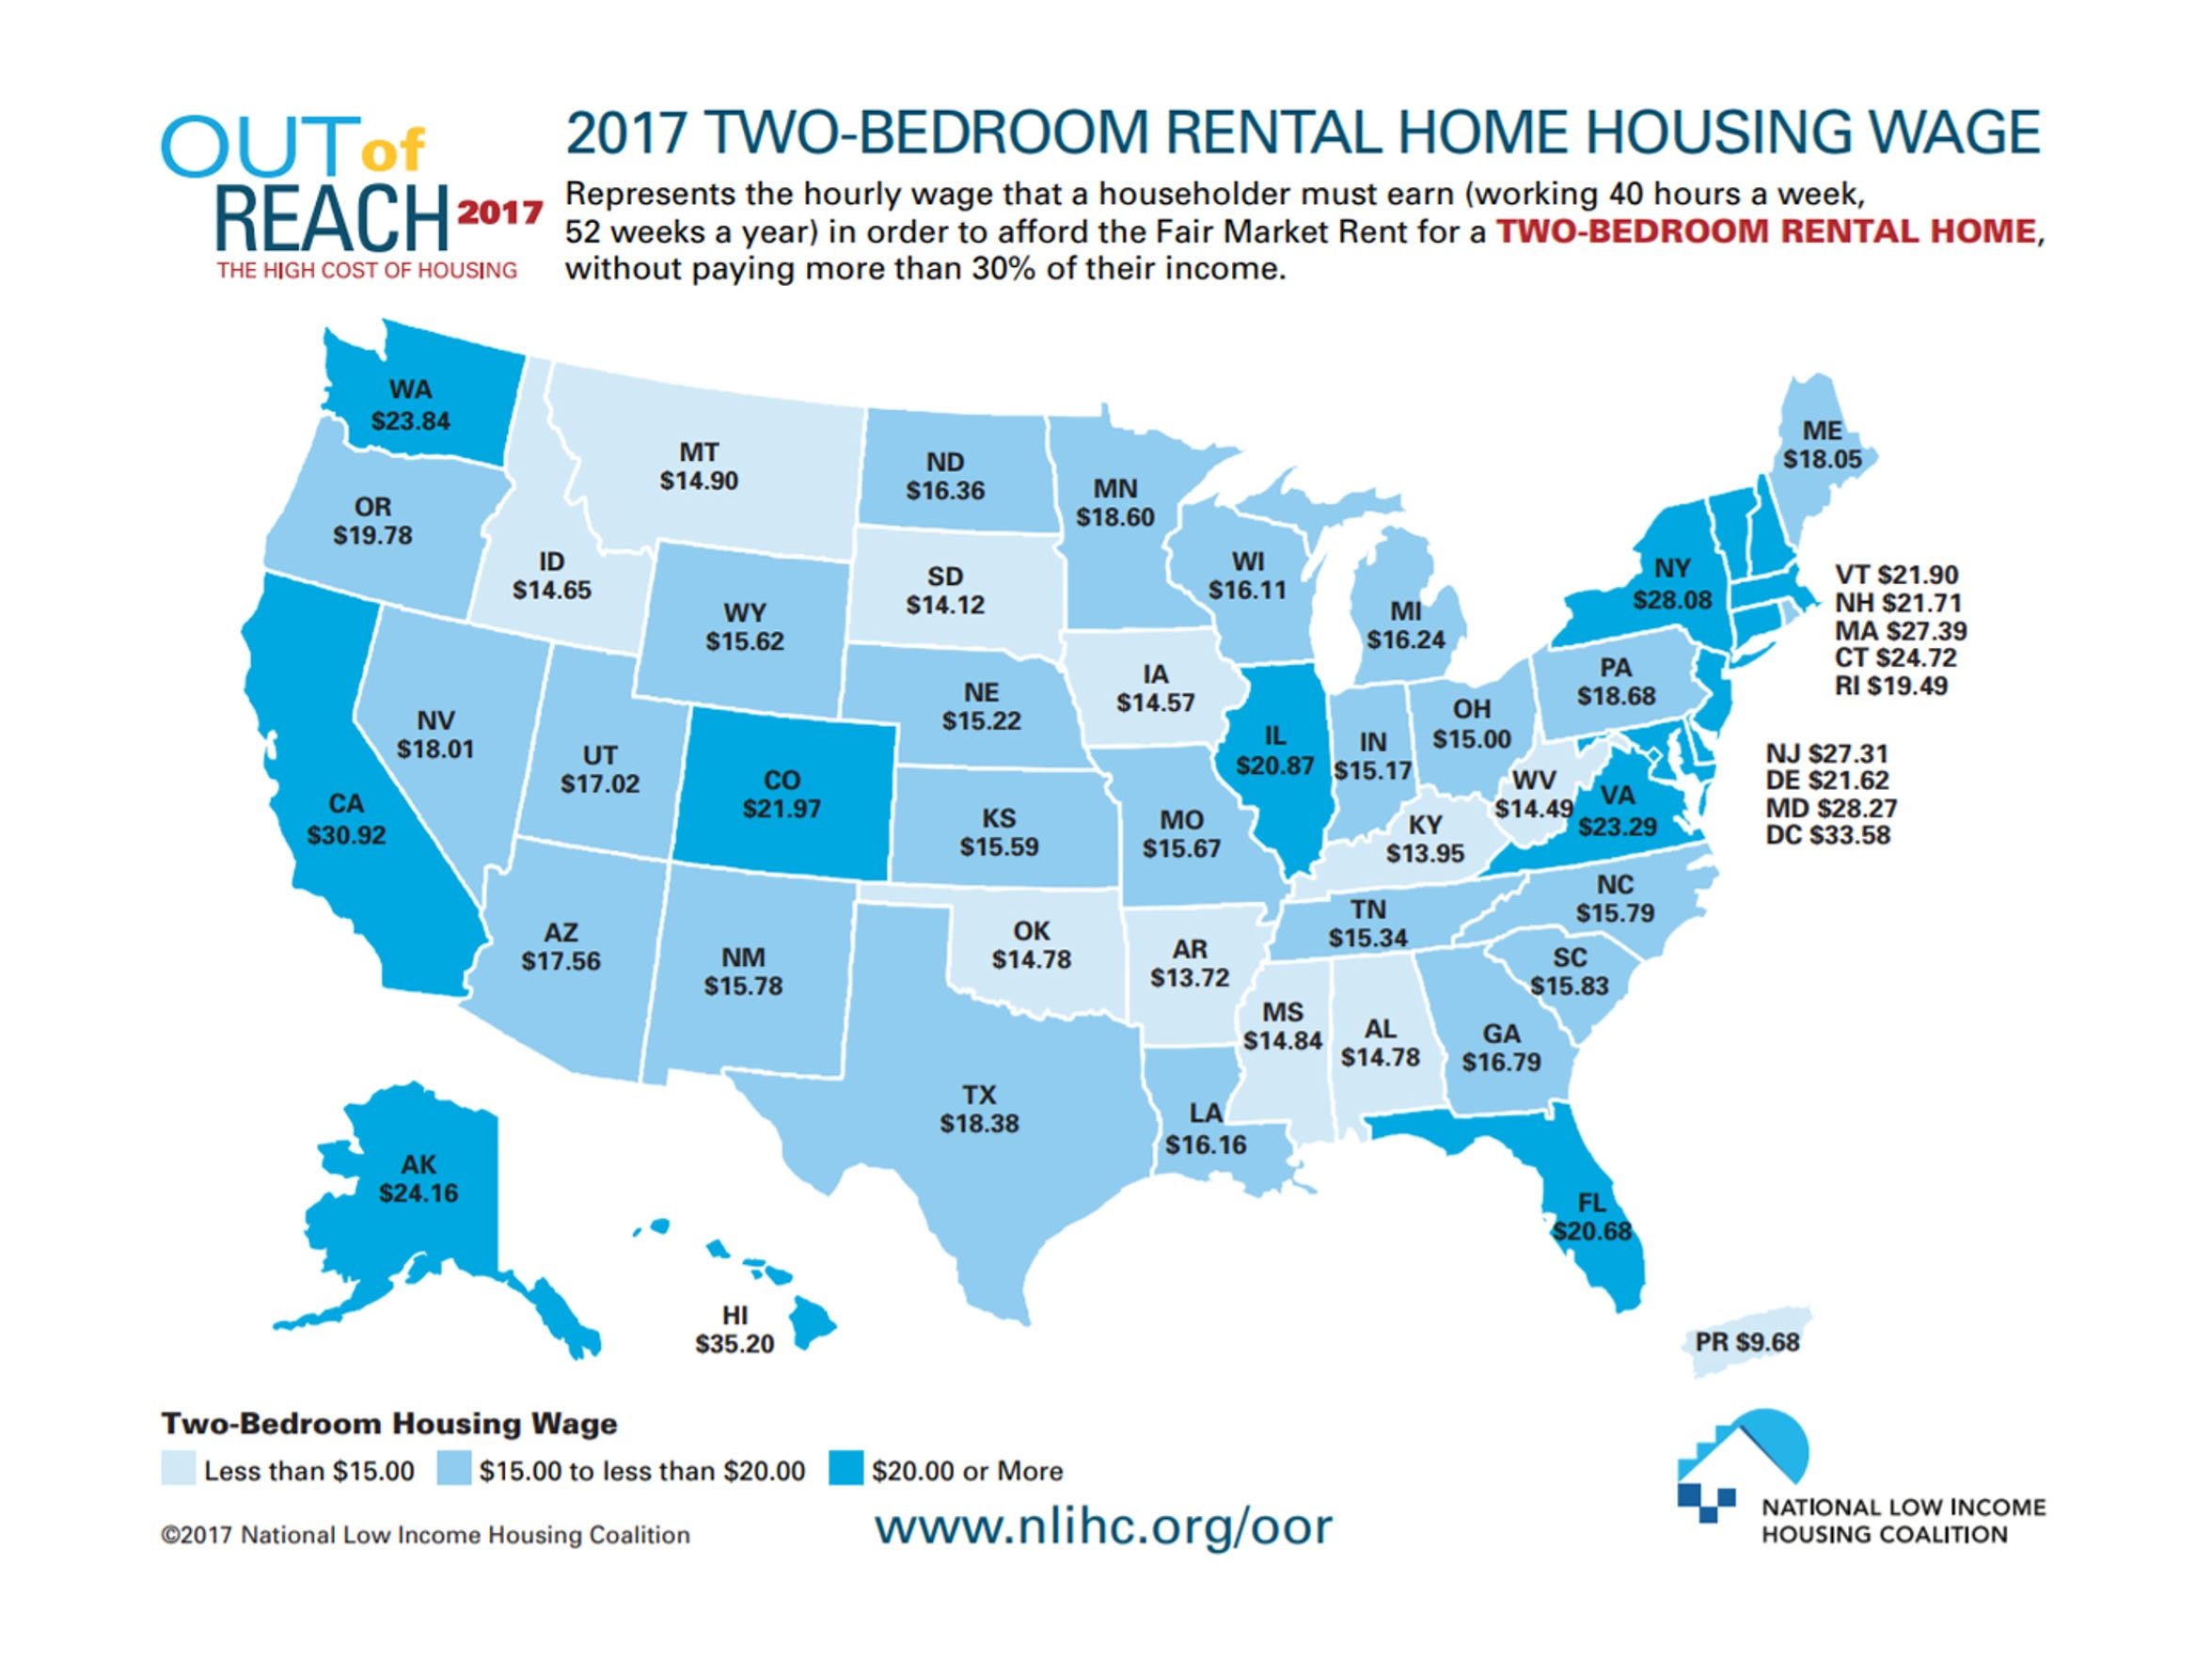 A look at how much income you need to make to afford a two-bedroom apartment in each state without paying more than 30 percent of your income.